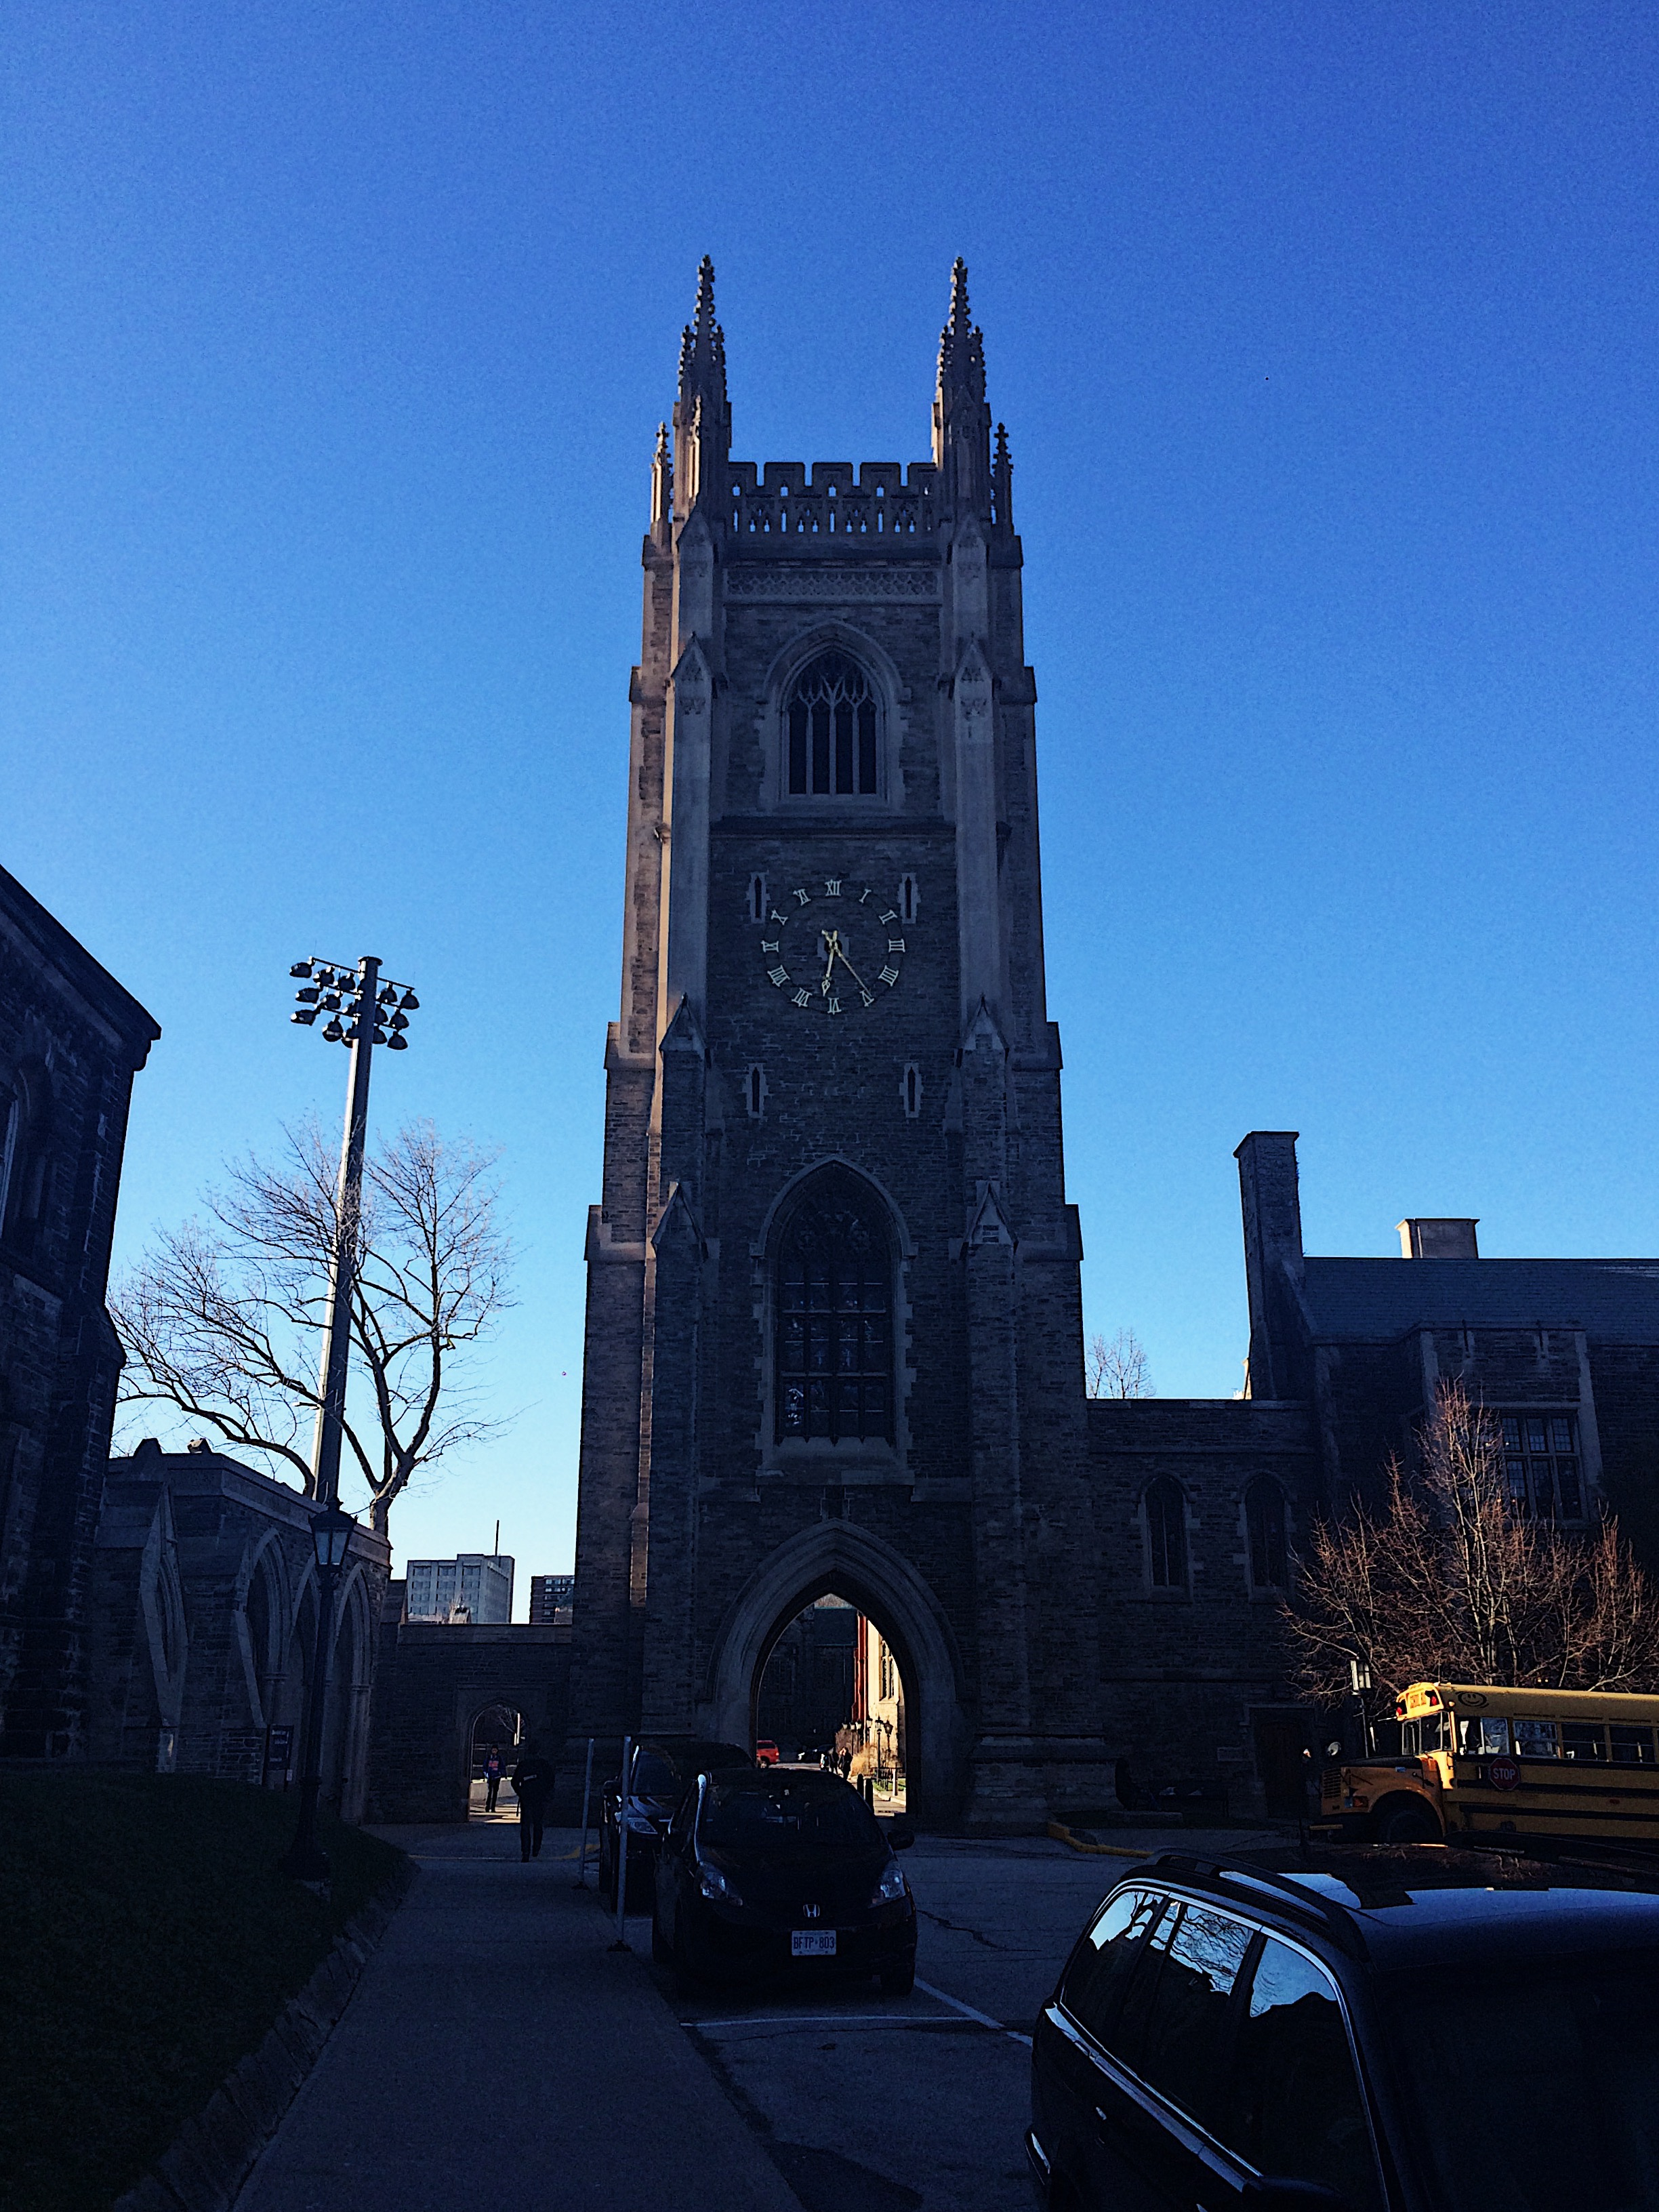 A photo of clock tower near Hart House